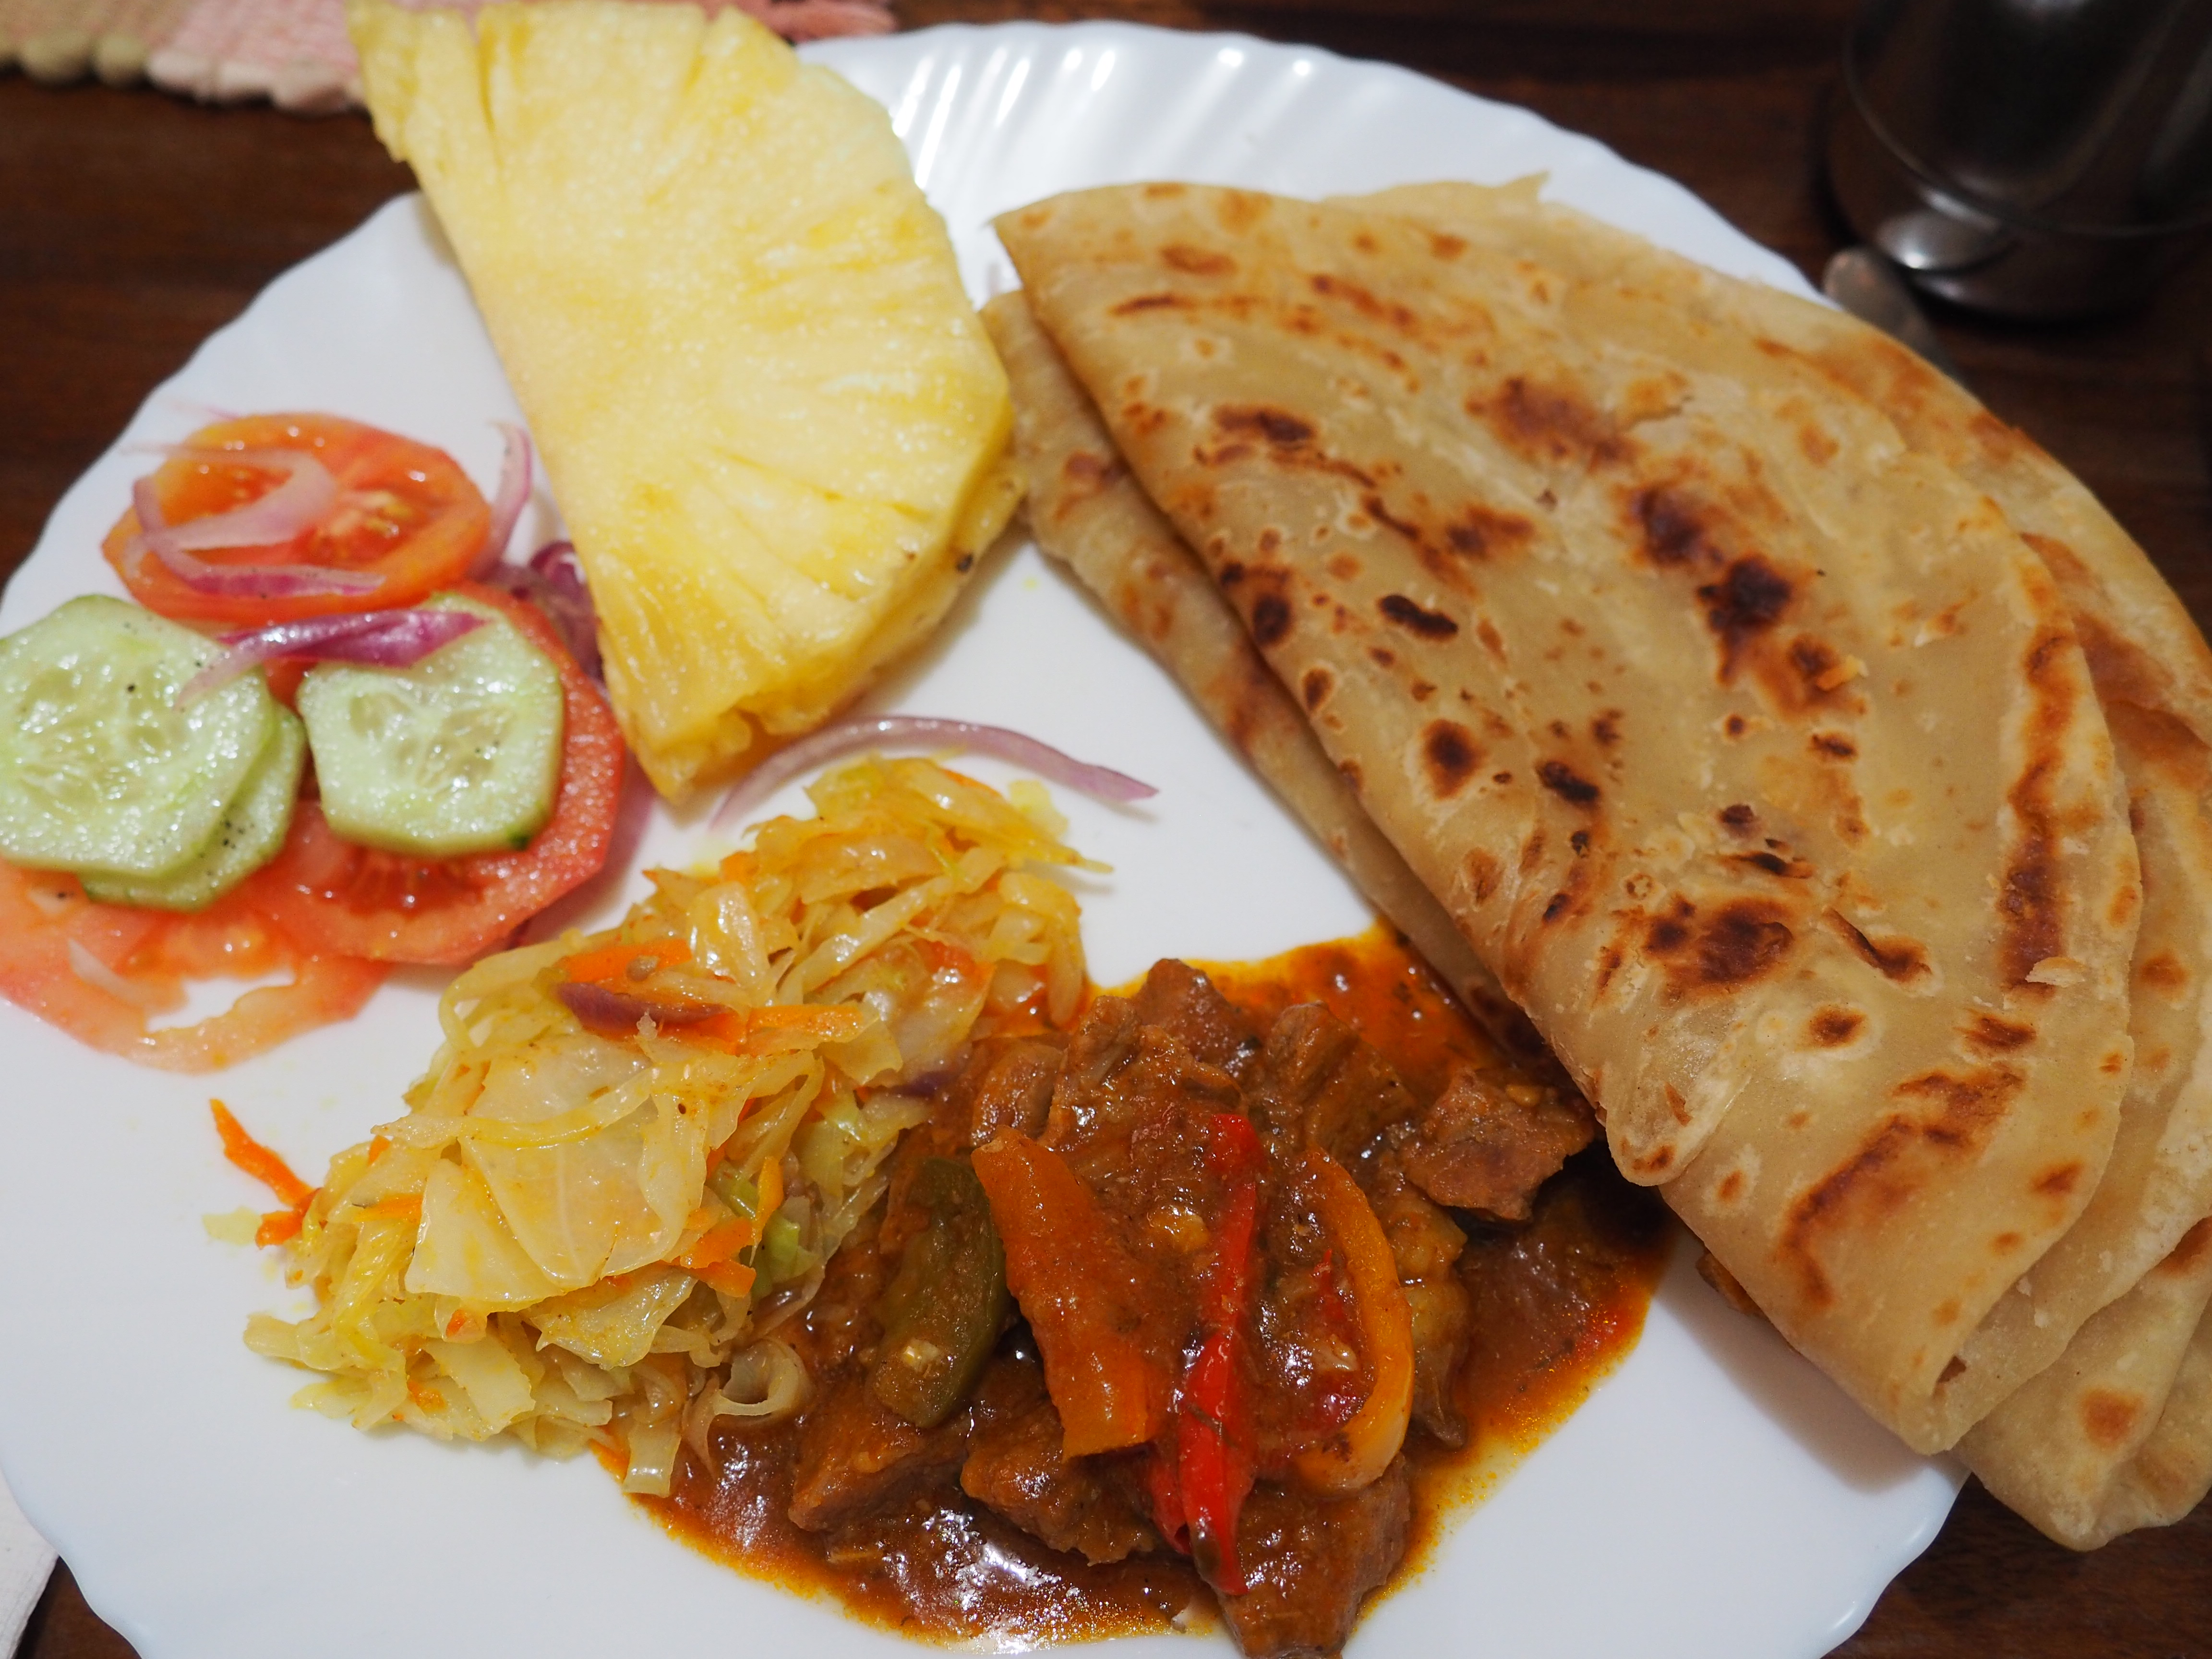 Mama Liz's meal: chapati, beef stew, cabbage, tomato-cucmber salad, and pineapple (Not pictured: amazingly delicious coconut rice)